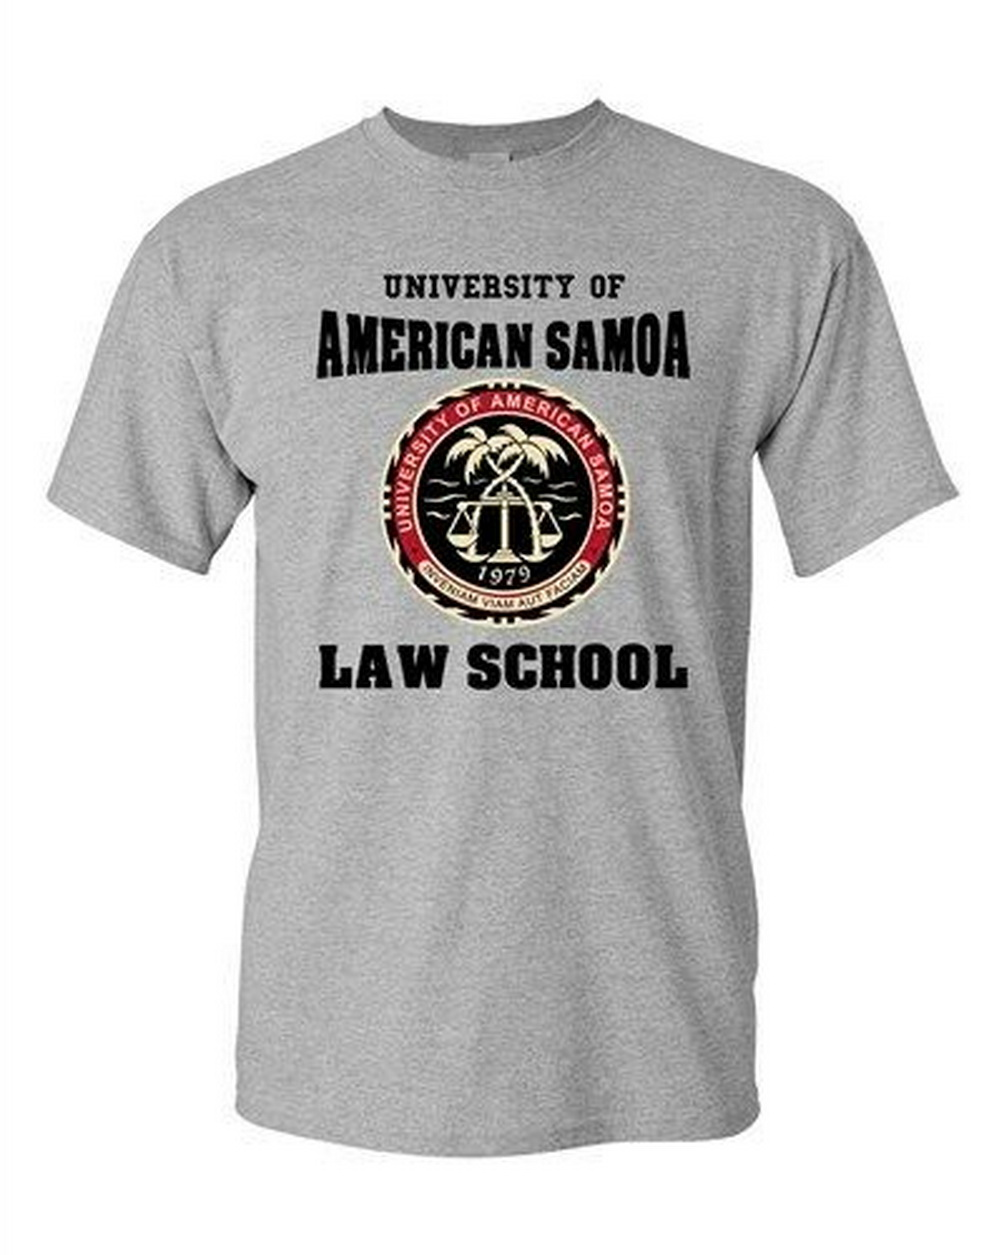 University Of American Samoa Law School Samoan Students Dt Adult T-Shirt Tee Free Shipping Funny Tops Tee Shirt image